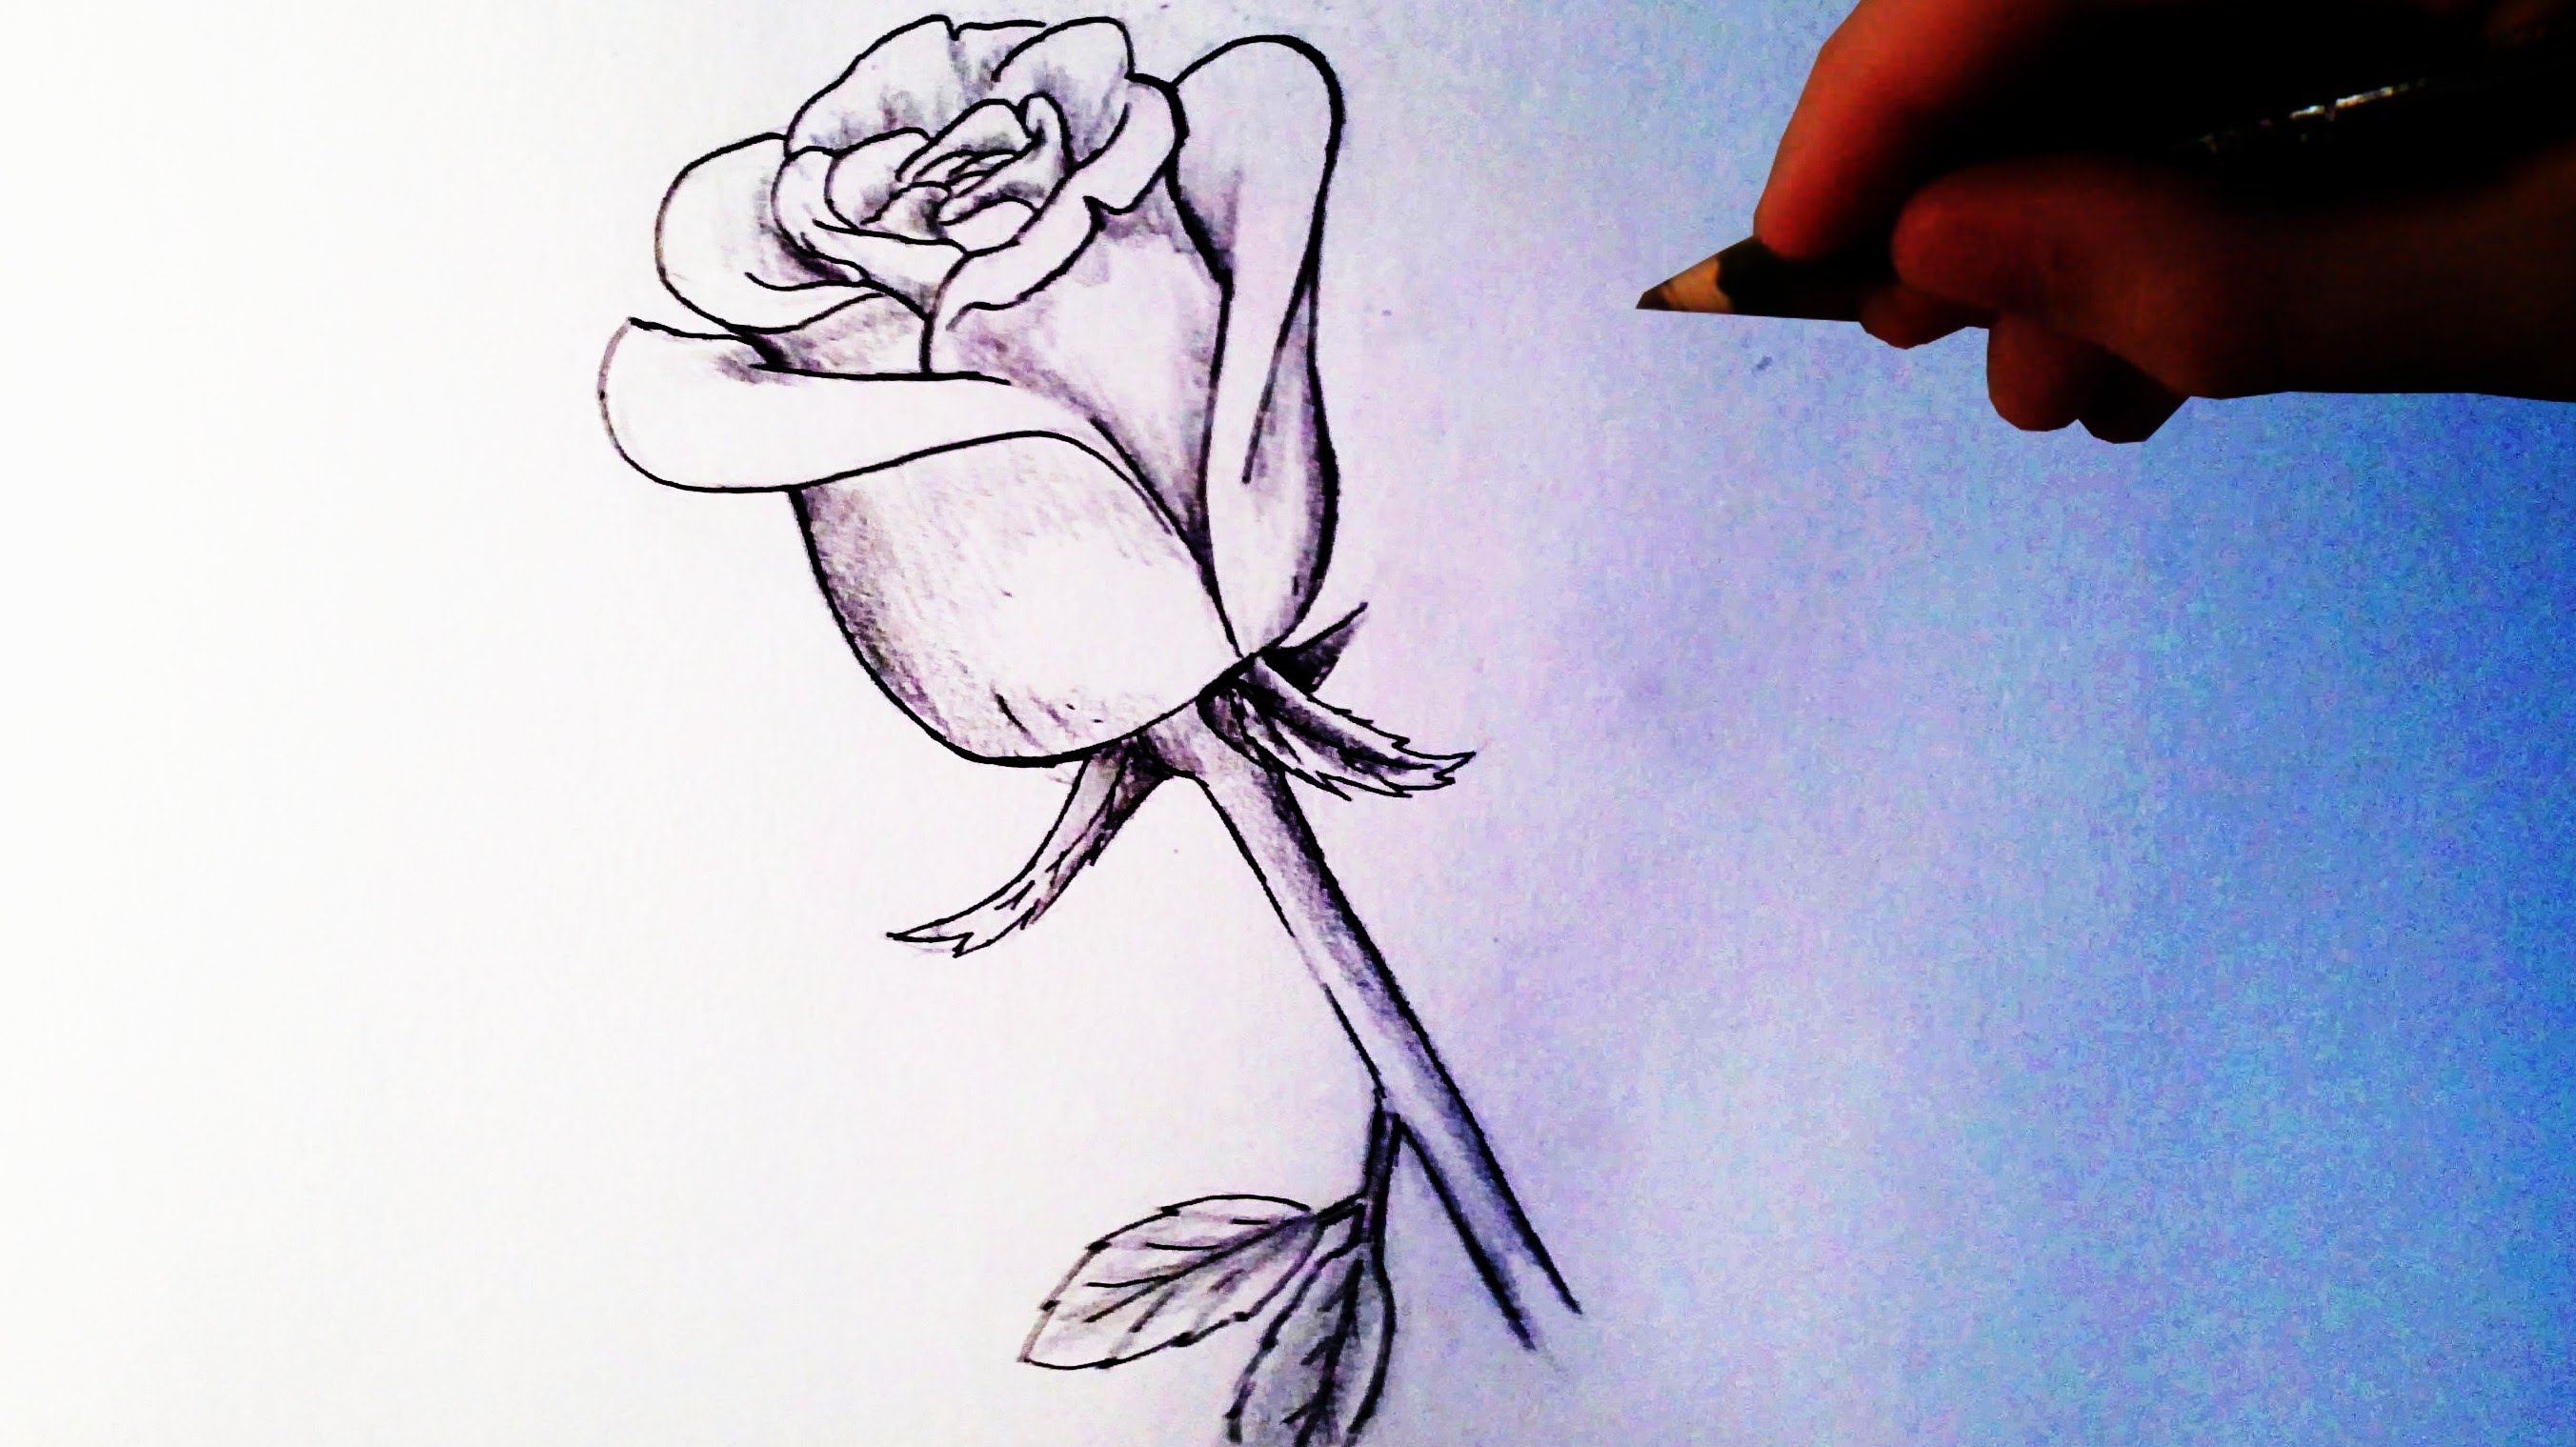 Drawn rose easy Draw a Easy Rose YouTube